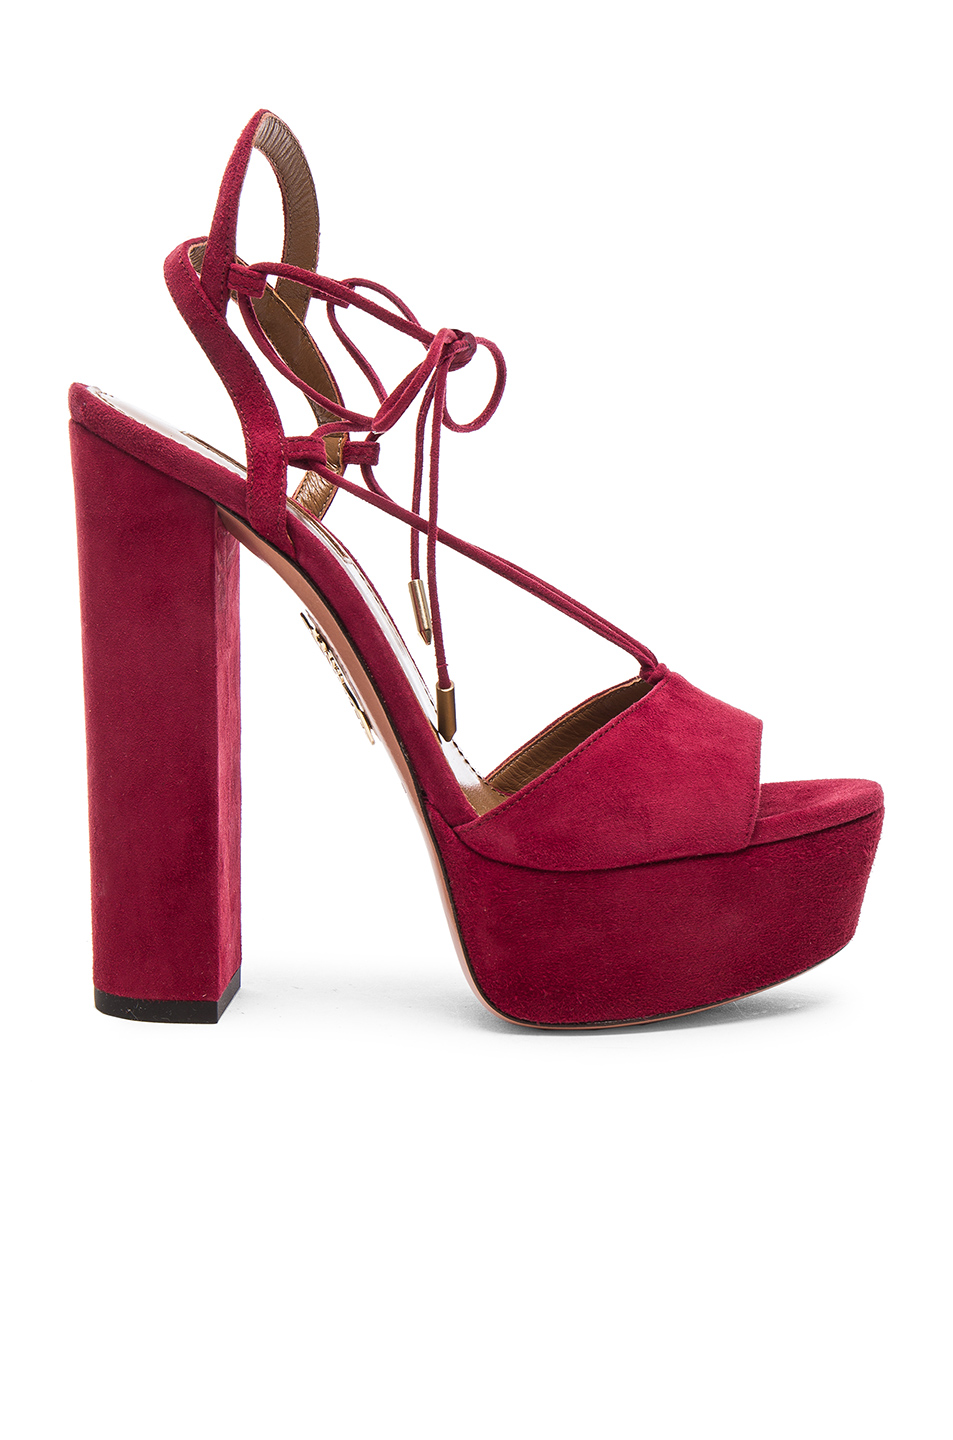 Photo of Aquazzura Suede Austin Plateau Heels in Red online sales